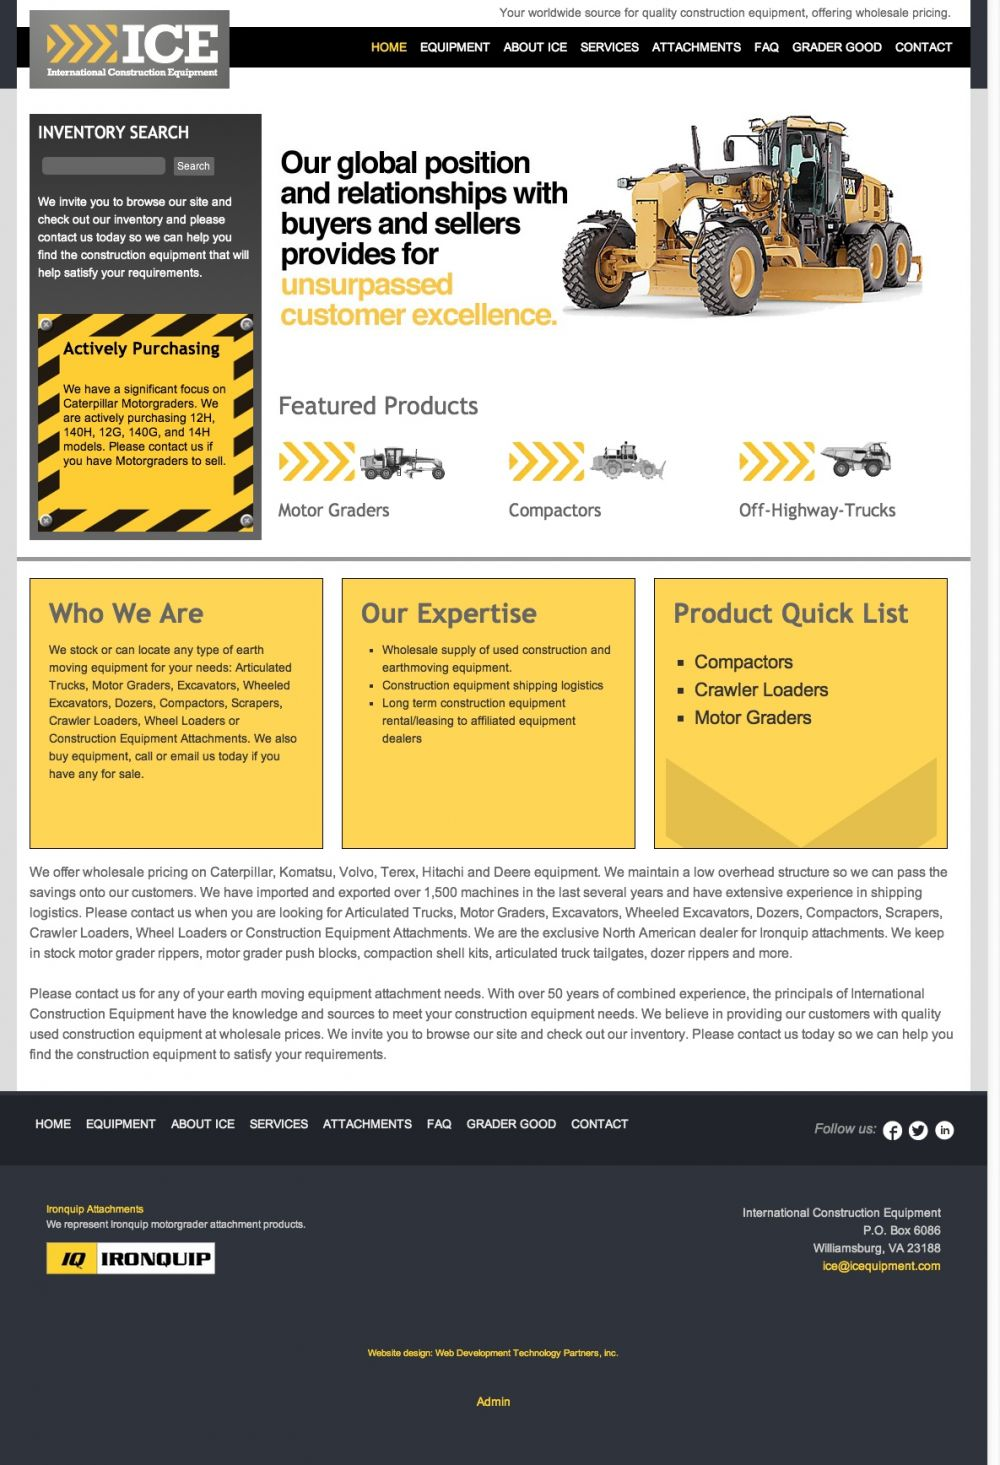 International Construction Equipment